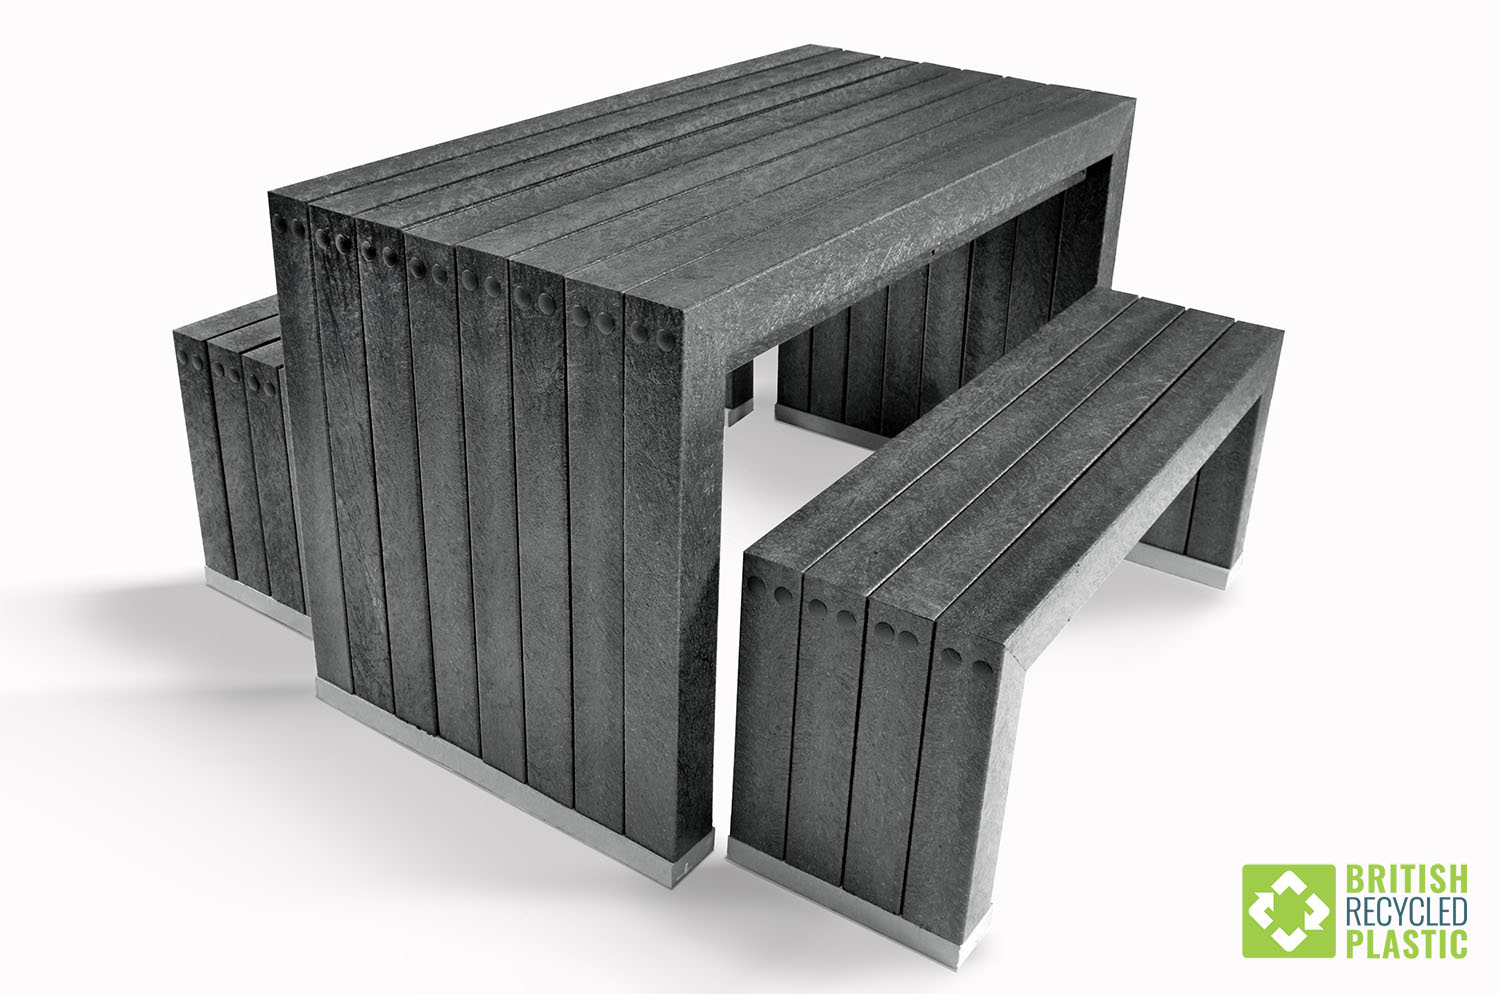 The Harrogate table and bench set from British Recycled Plastic combines elegance with practicality